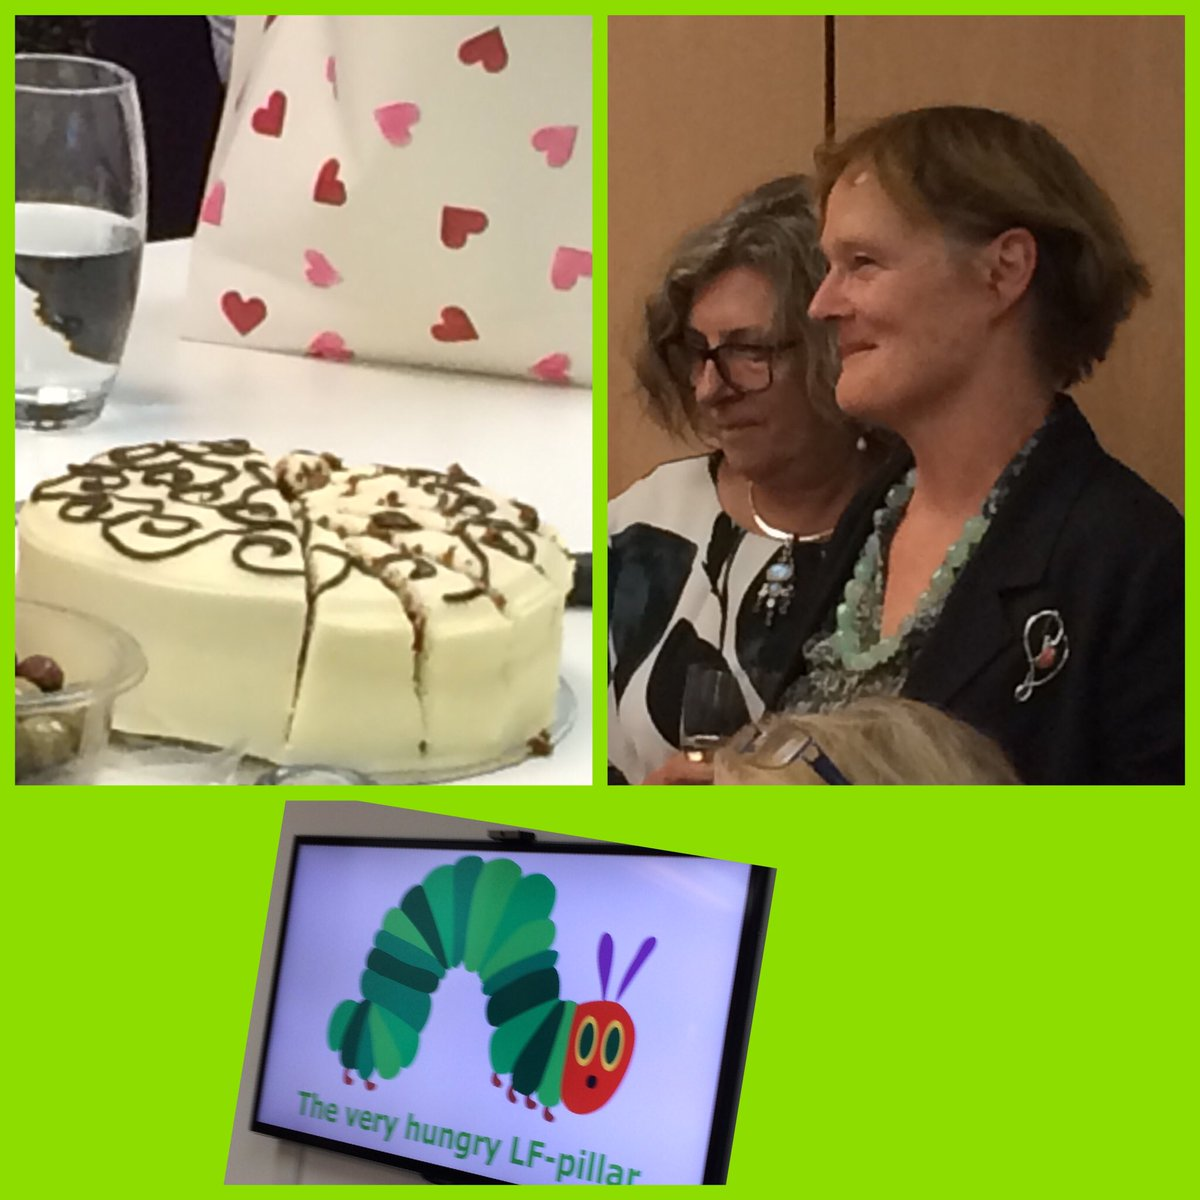 @LF4HE marks the considerable contribution of @ProfFionaRoss with small thanks - you will be much missed &amp; often called #LFLead <br>http://pic.twitter.com/dLsVCcqa51